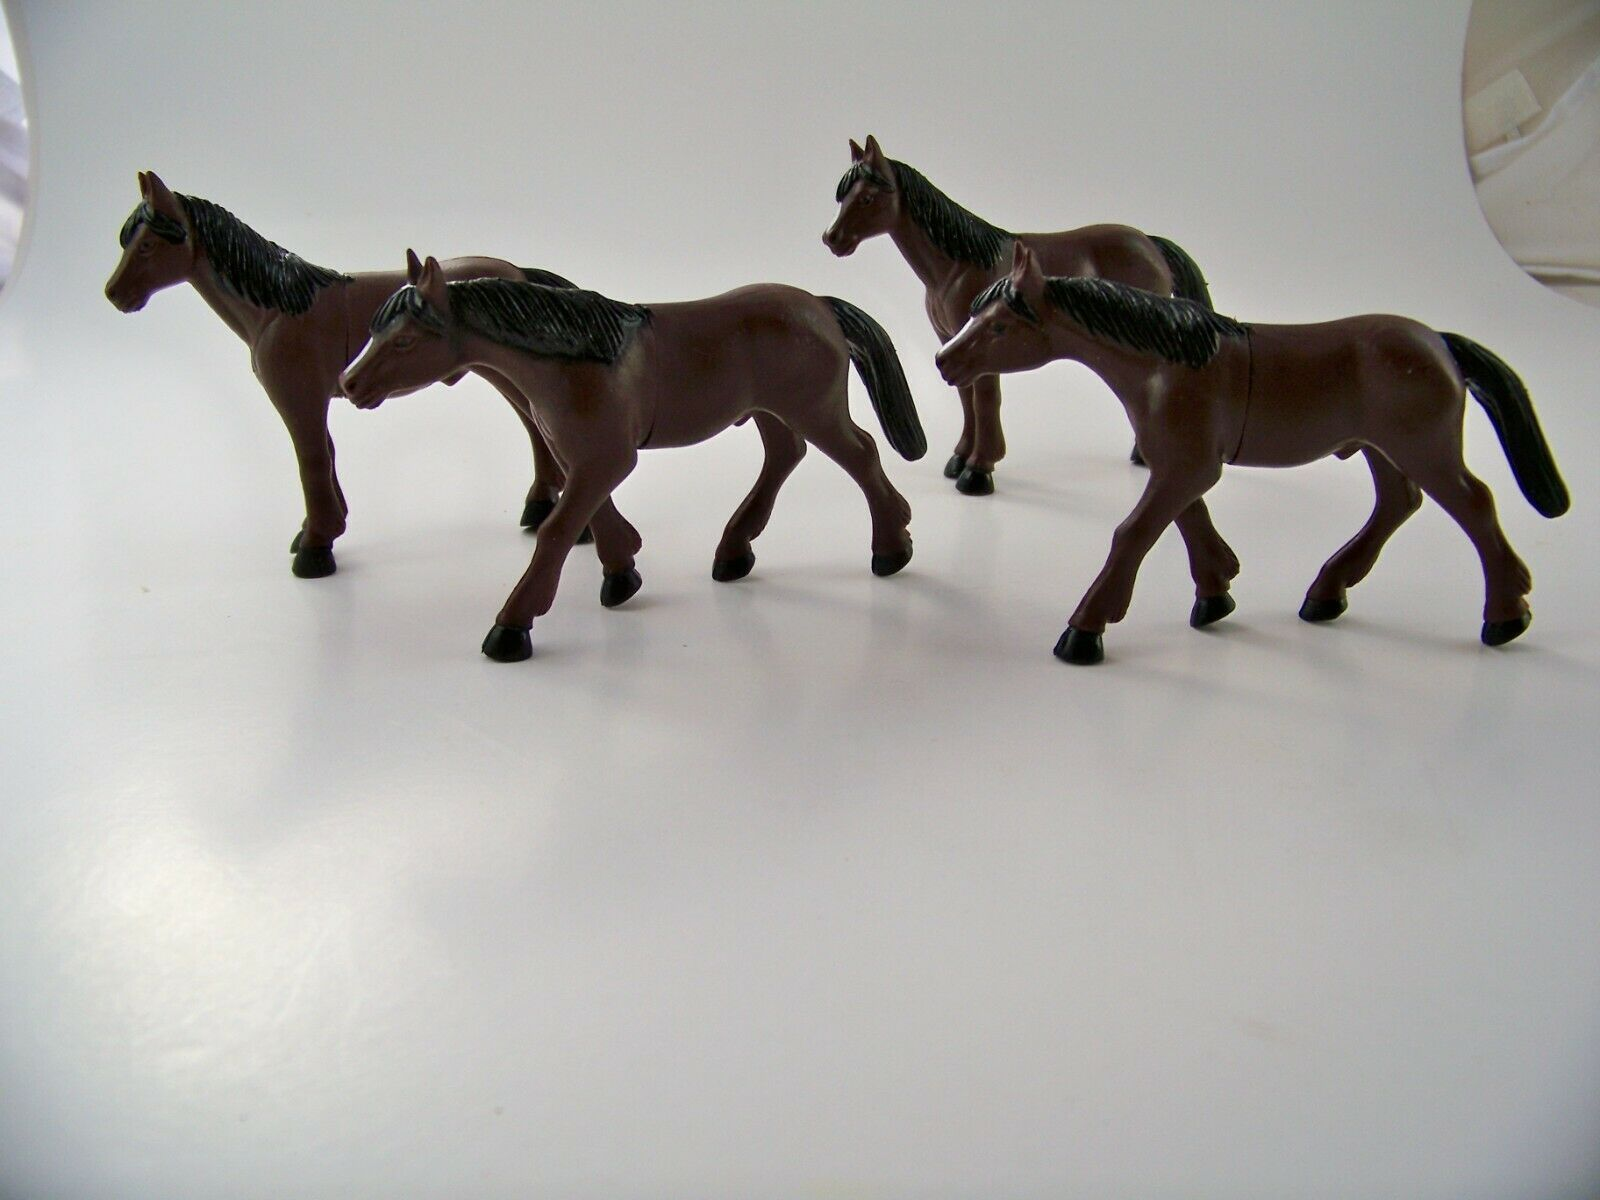 Primary image for Snicklefritz 4 Farm Horses Barn Animals Ranch Toys Kids Educational Figurines